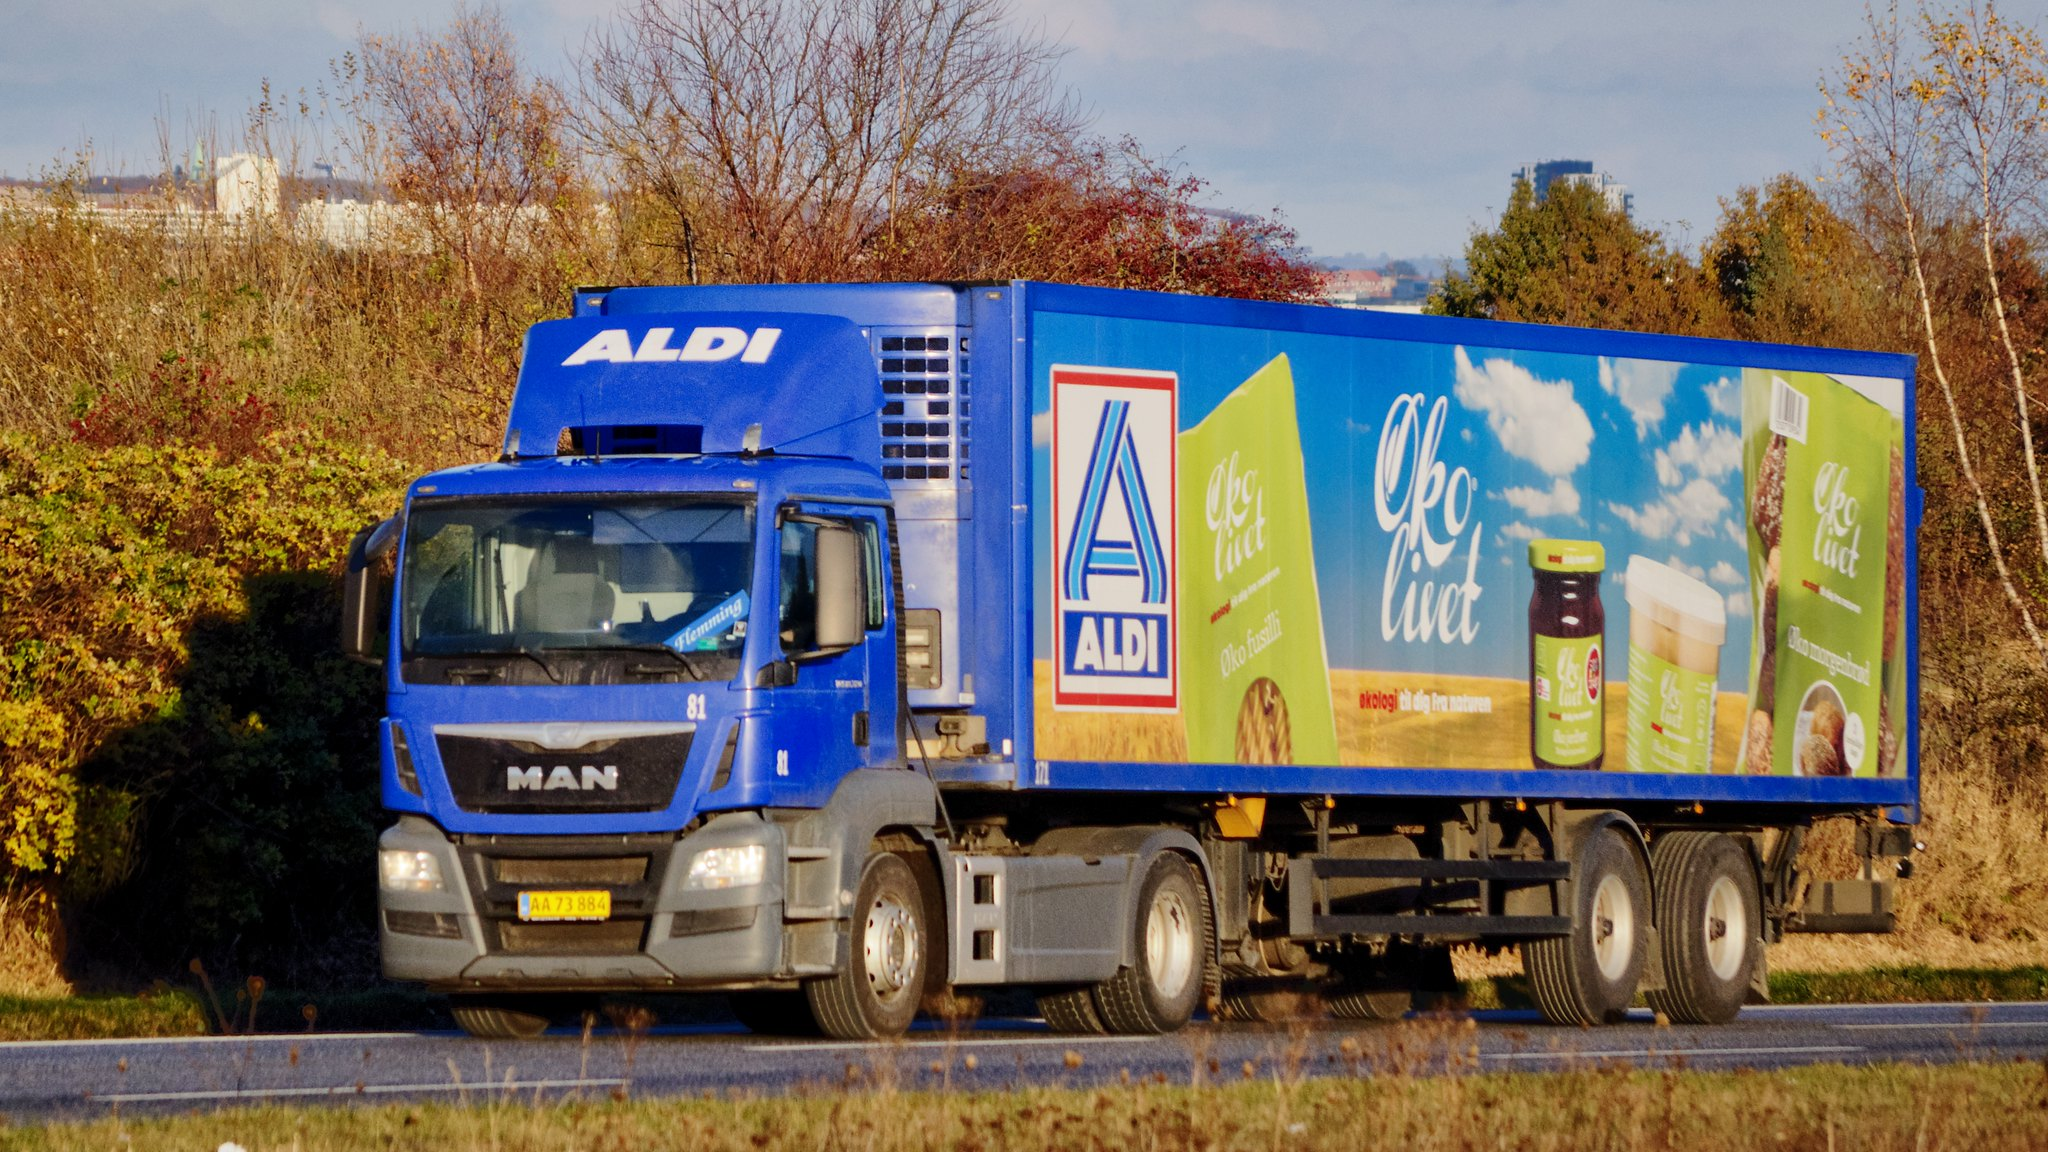 Lidl and Aldi face supply chain challenges over Evergiven Suez accident